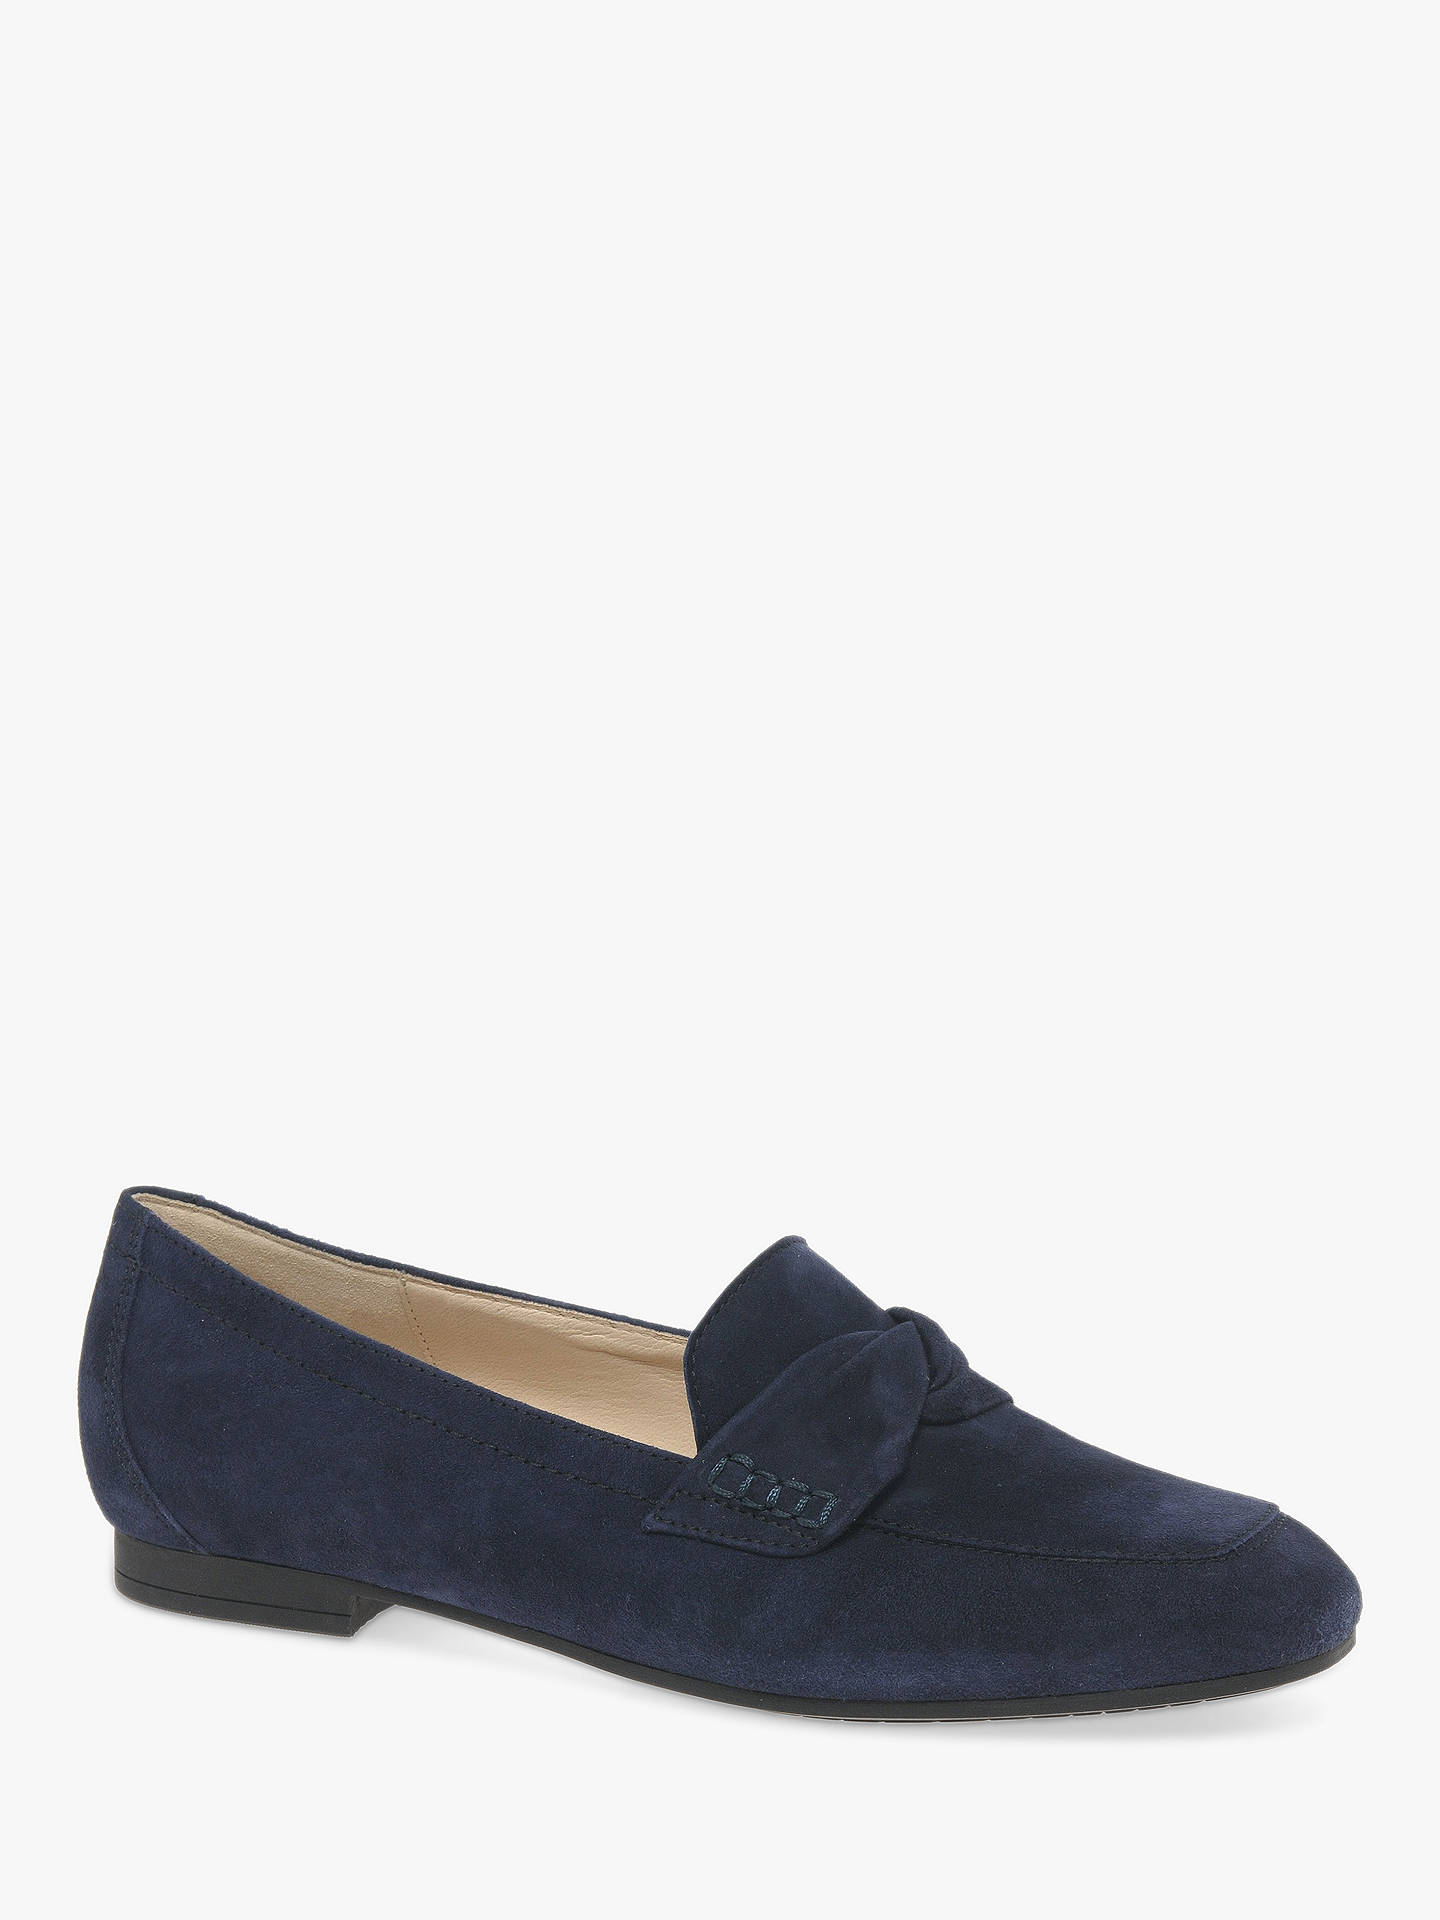 e68631be64b Gabor Mendoza Loafers, Navy Suede at John Lewis & Partners